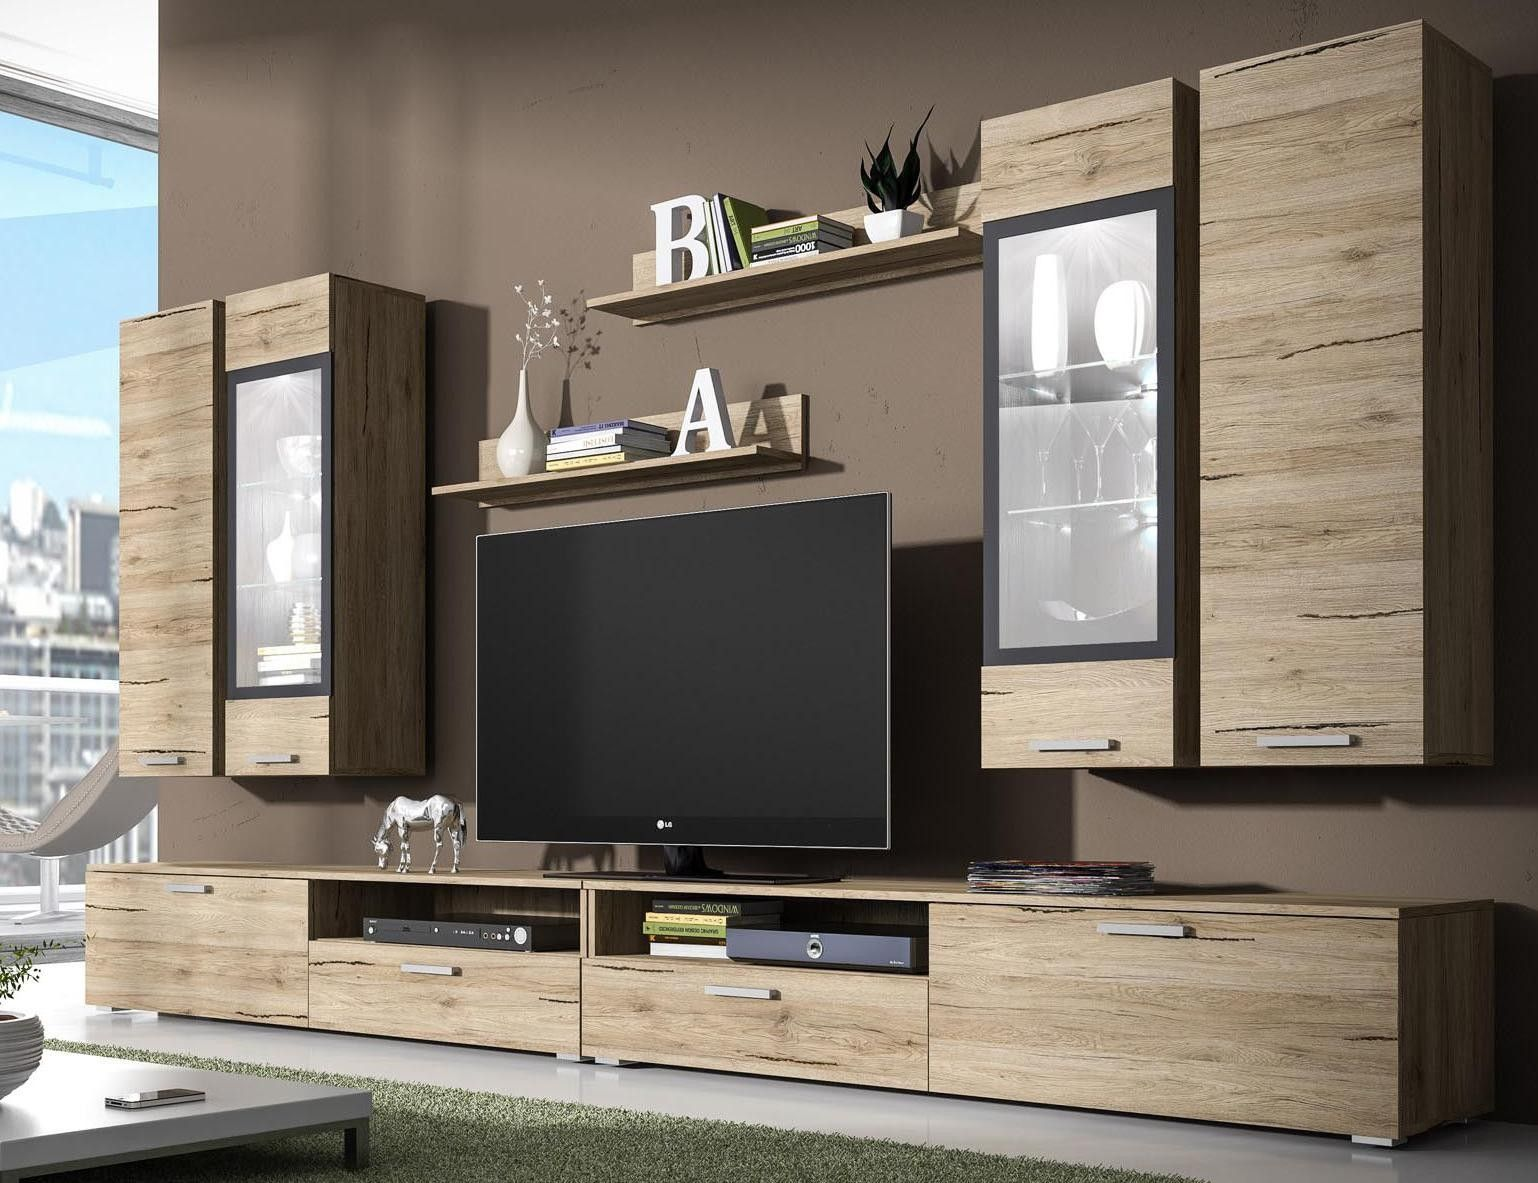 Meuble Tv Mural En Bois - Ensemble Meuble Tv Mural Nova Meuble Tv Design Pas Cher [mjhdah]http://www.emporiodellacasa.com/media/catalog/product/cache/7/image/9df78eab33525d08d6e5fb8d27136e95/n/o/norman_norm01tv517_61.jpg